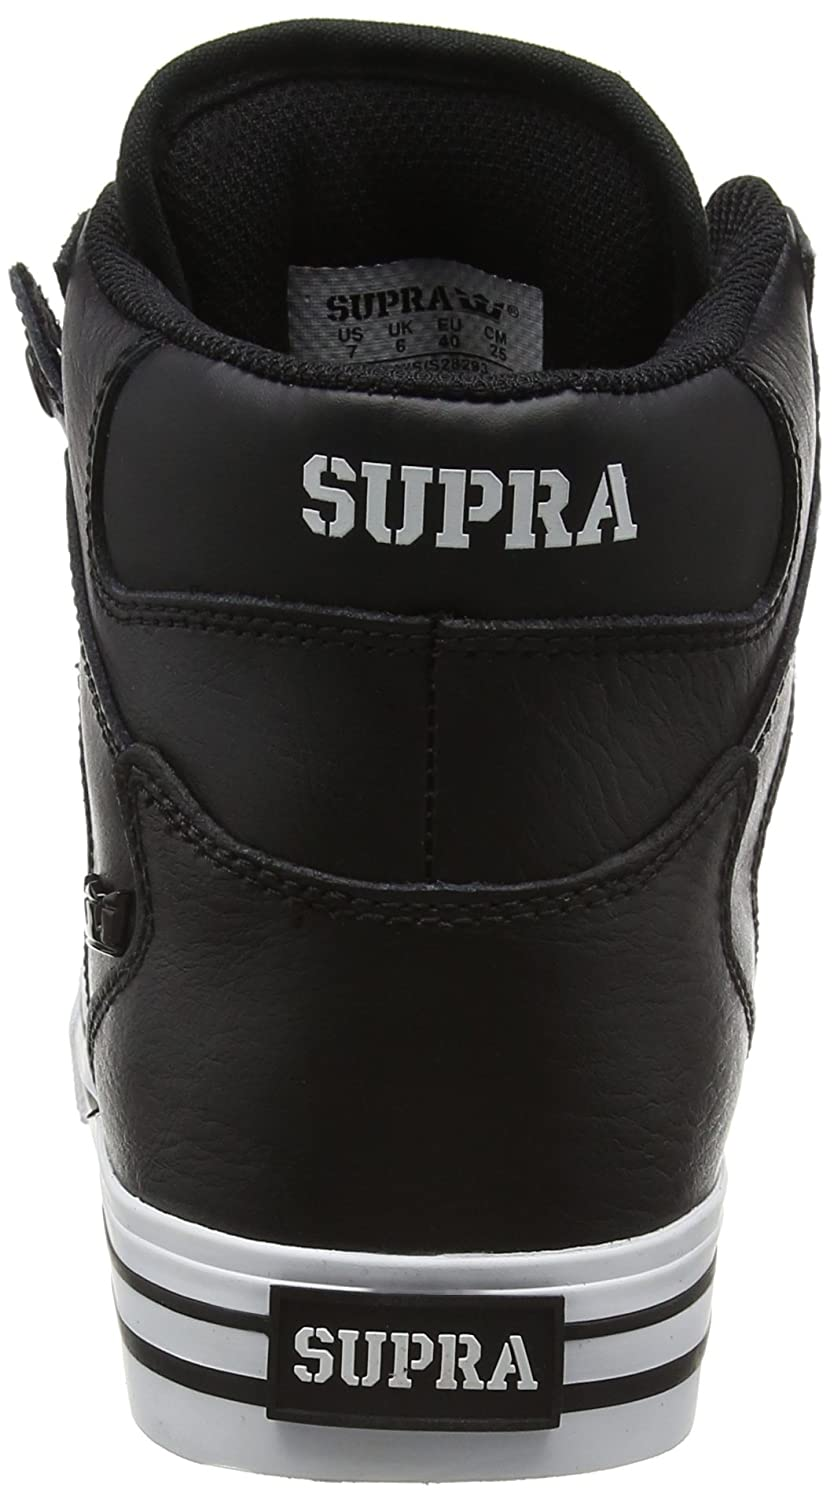 Supra Vaider Skate Shoe B011JIN0BC Medium / 11 C/D US Women / 9.5 D(M) US Men|Black/White